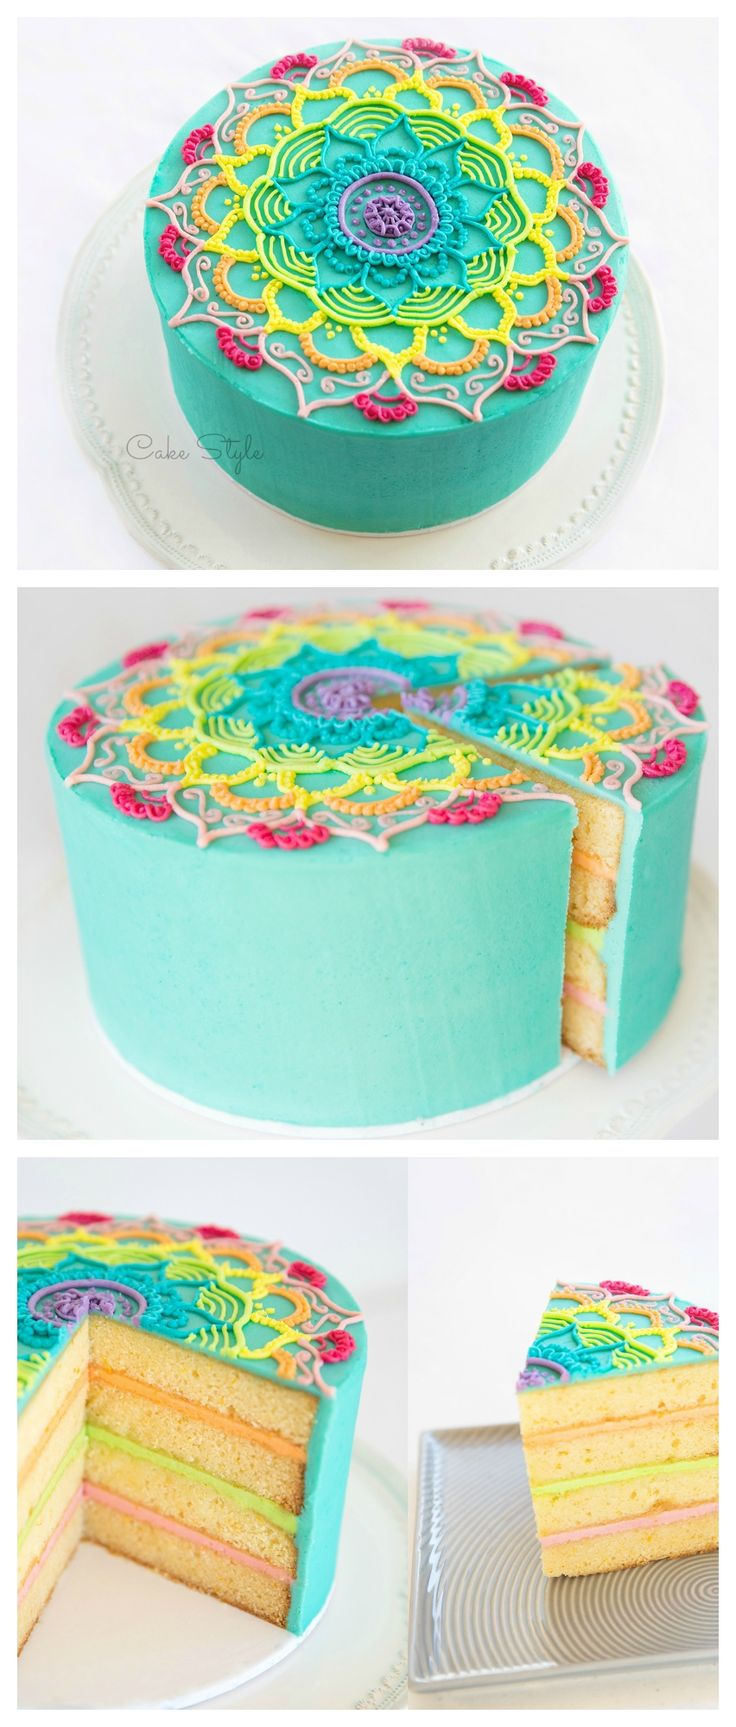 Mandala Cake. How amazing!! Video tutorial ~ https://youtu.be/cUuSL94f8jo